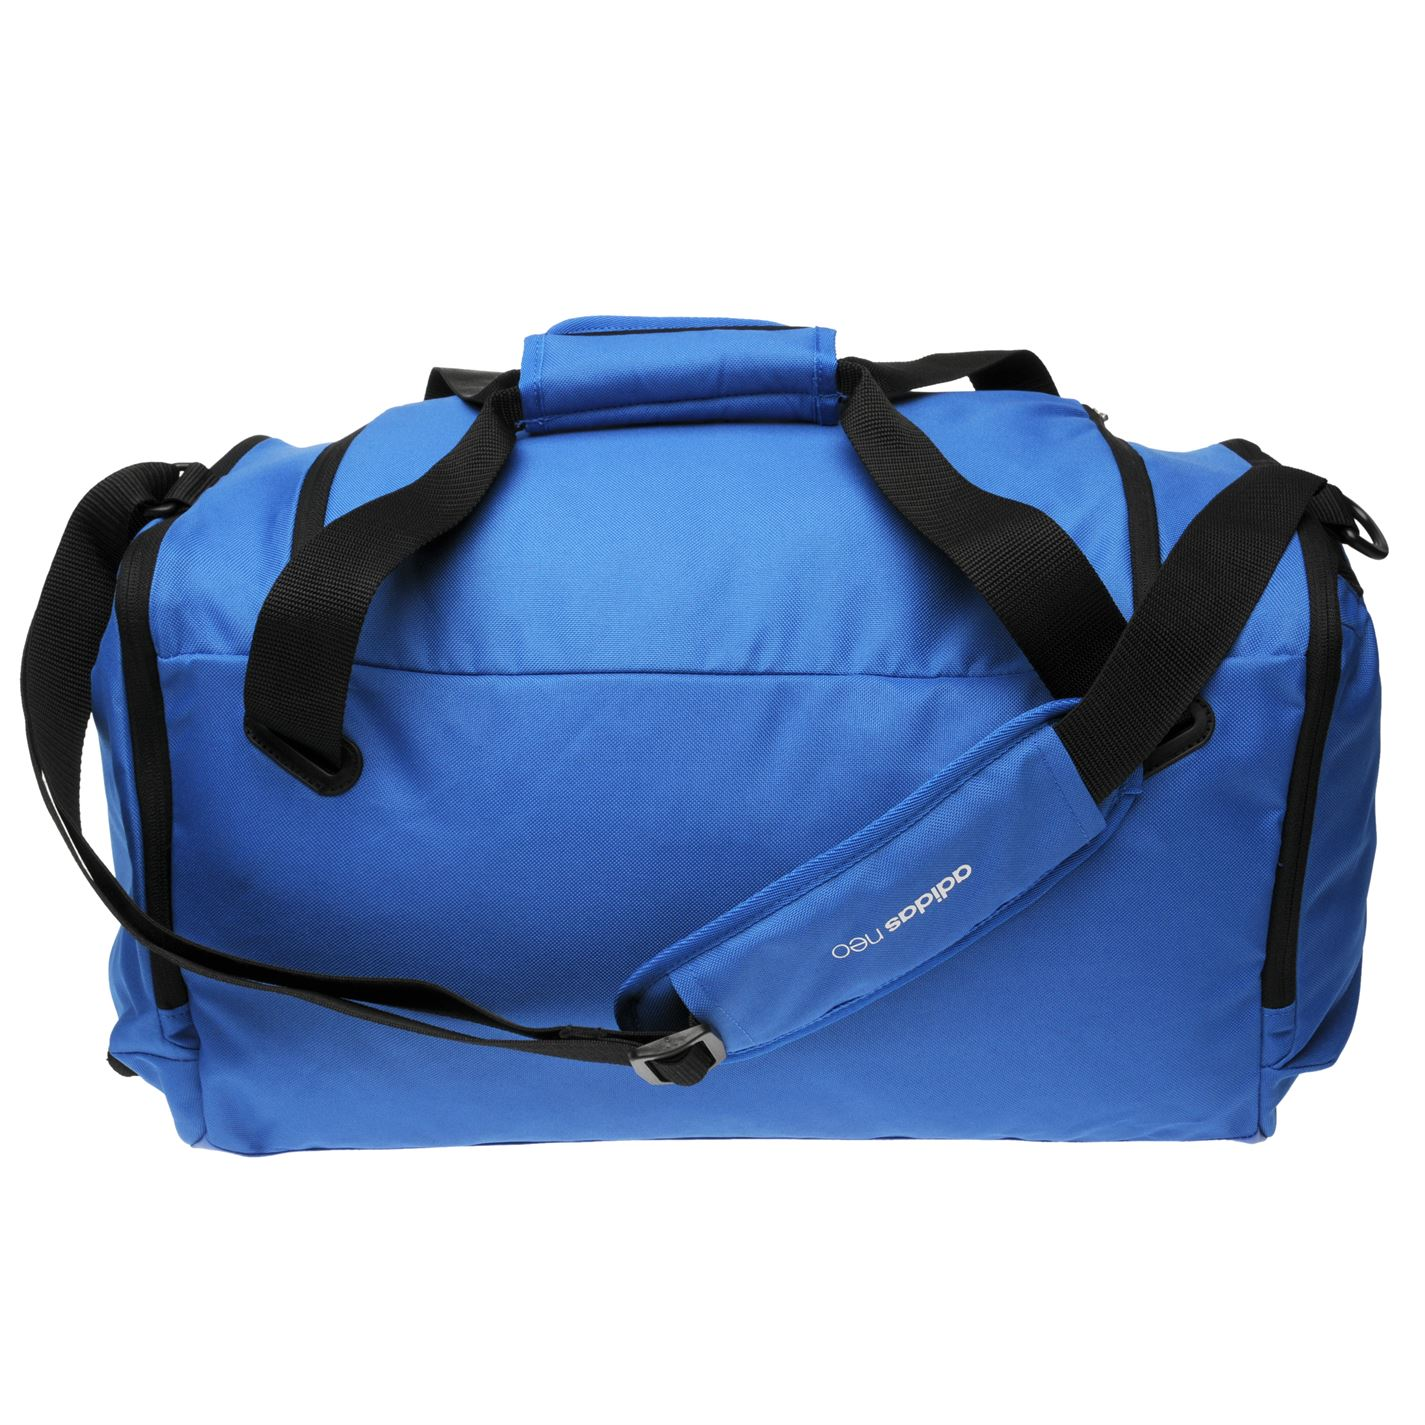 77ce1378b3db adidas Lined Small Team Bag Holdall Carrier Sports Training Sack ...